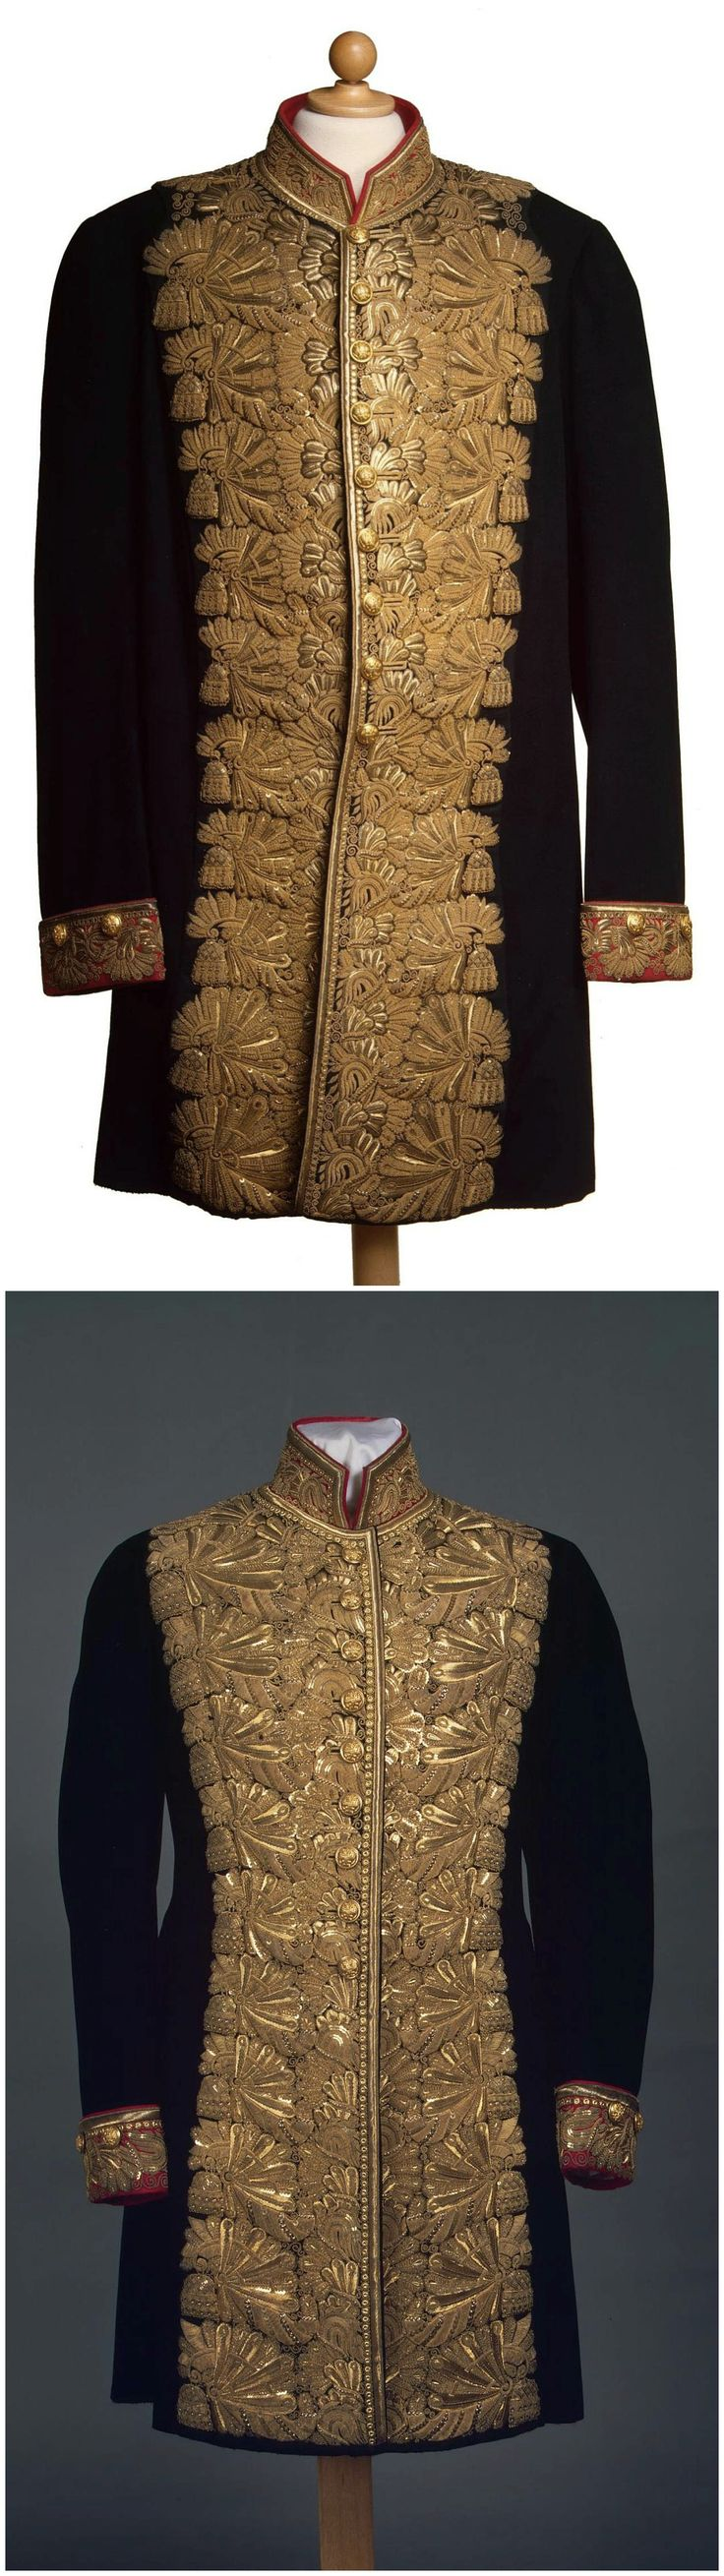 Chamberlain's ceremonial uniforms, St. Petersburg, Russia, late 19th to early 20th century. State Hermitage Museum. CLICK FOR LARGER, HI-RES IMAGES.